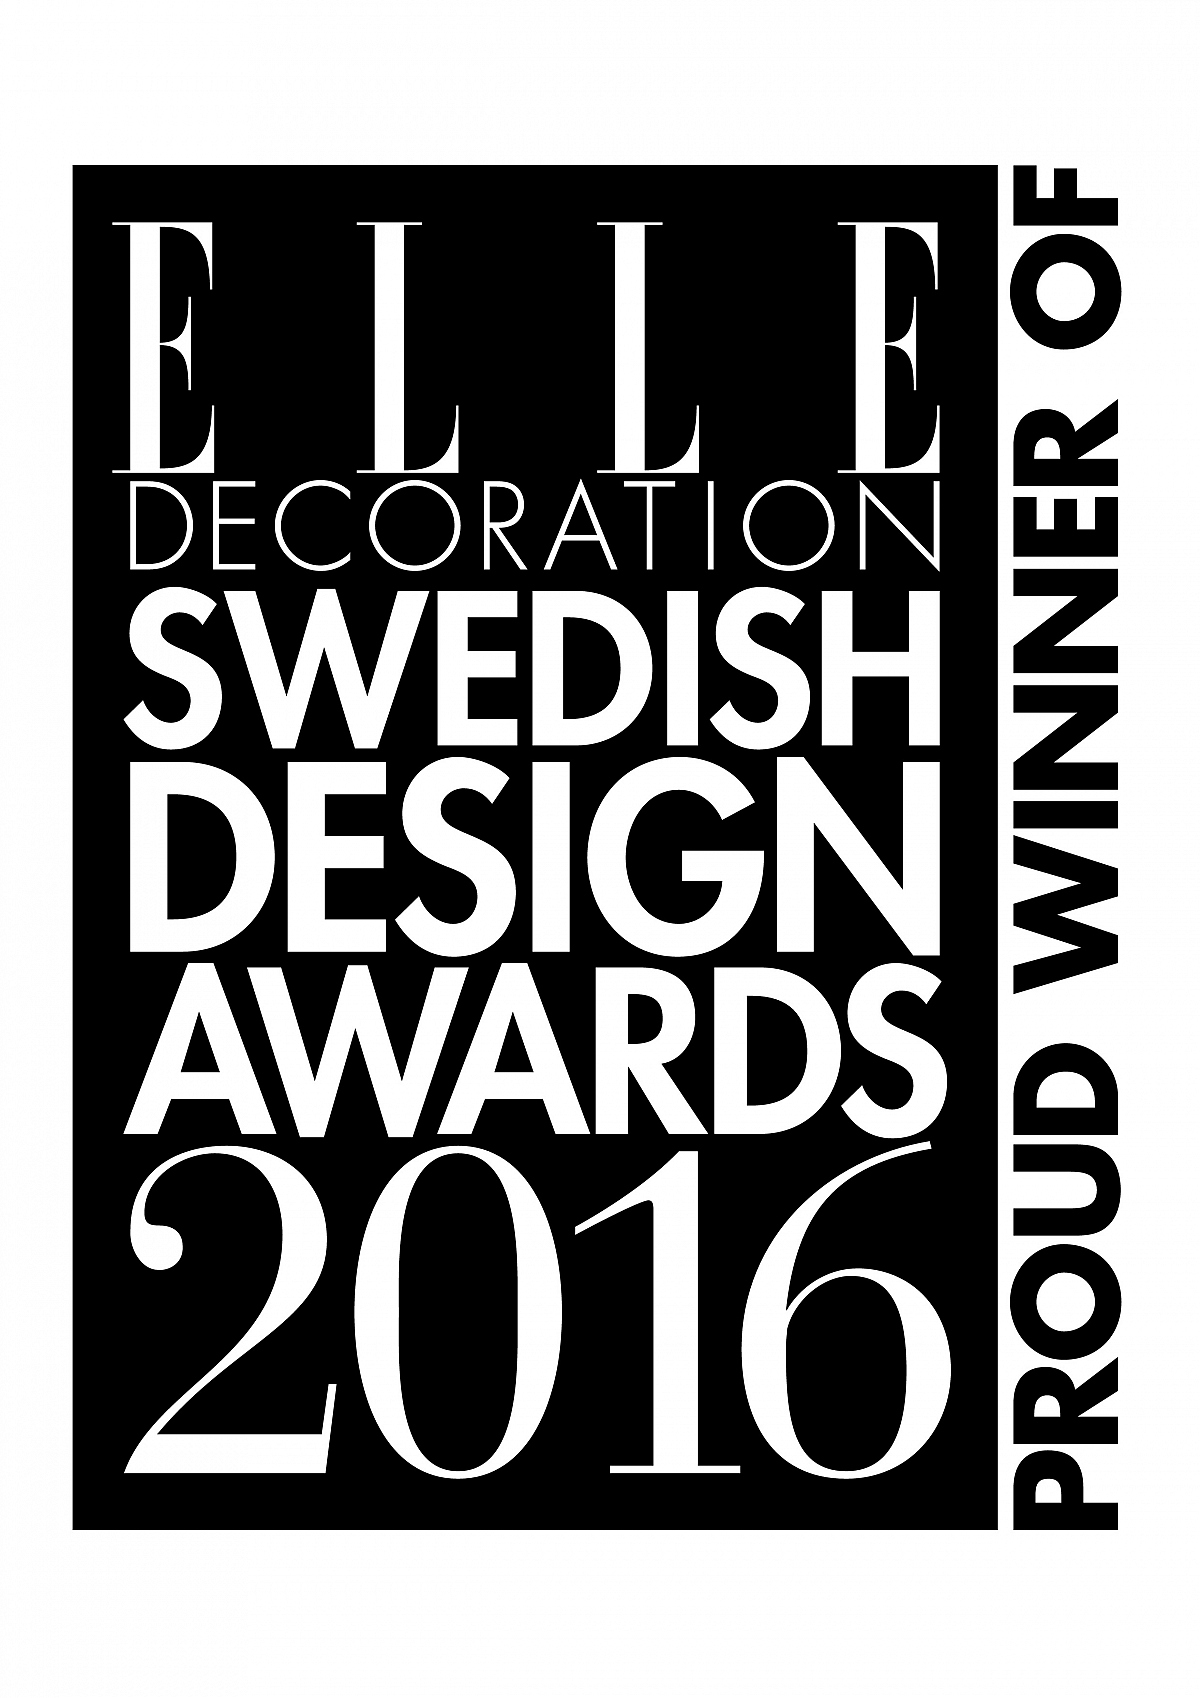 decoration swedish design awards 2016 187 swoon